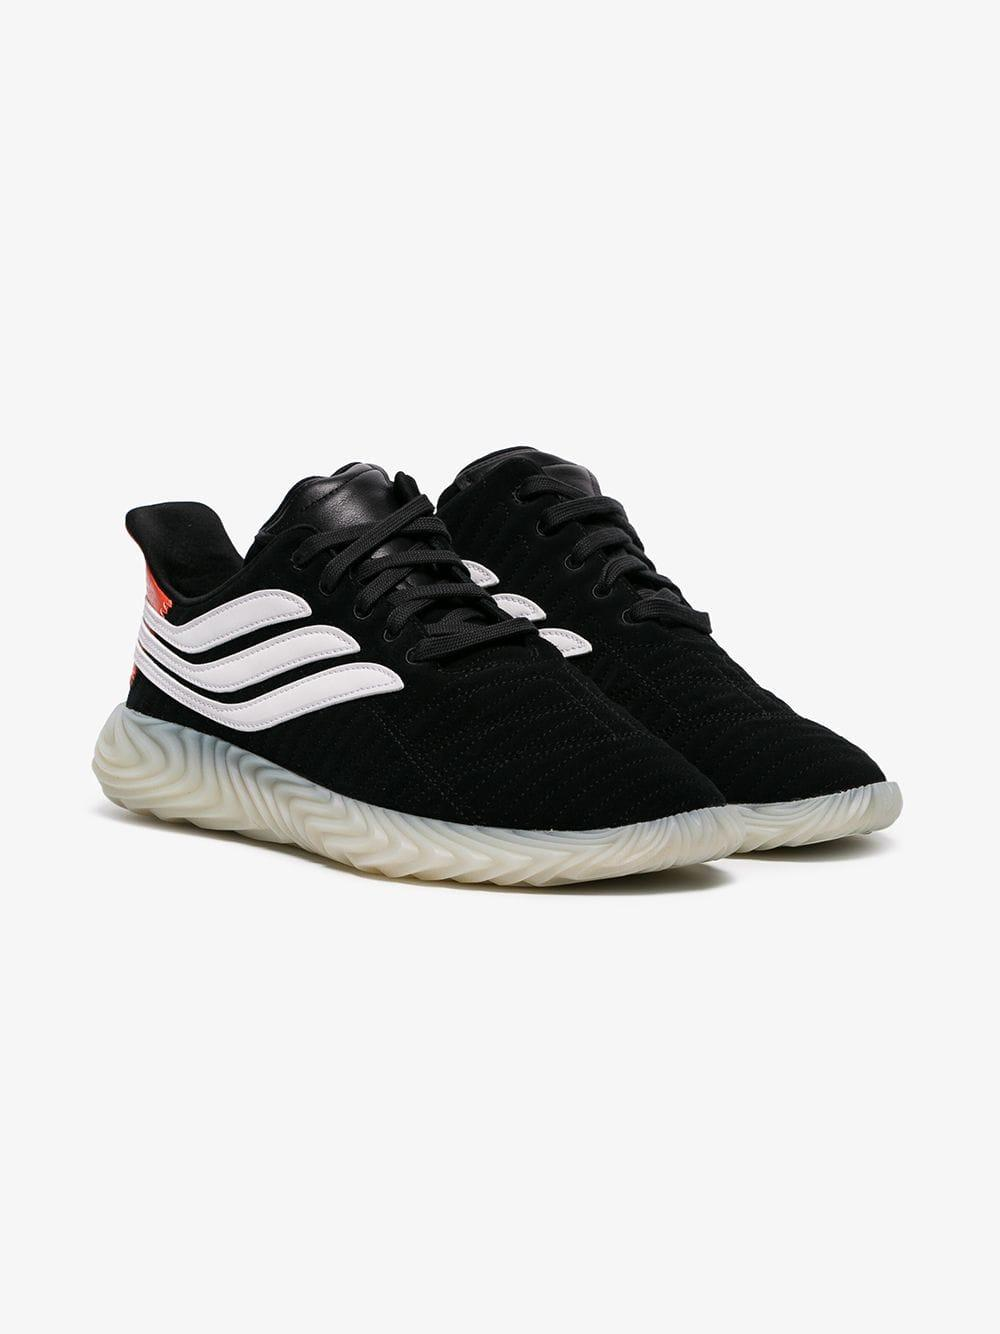 the best attitude 6a5b3 08b85 adidas Black And White Sobakov Suede Leather Sneakers in Black for Men -  Lyst